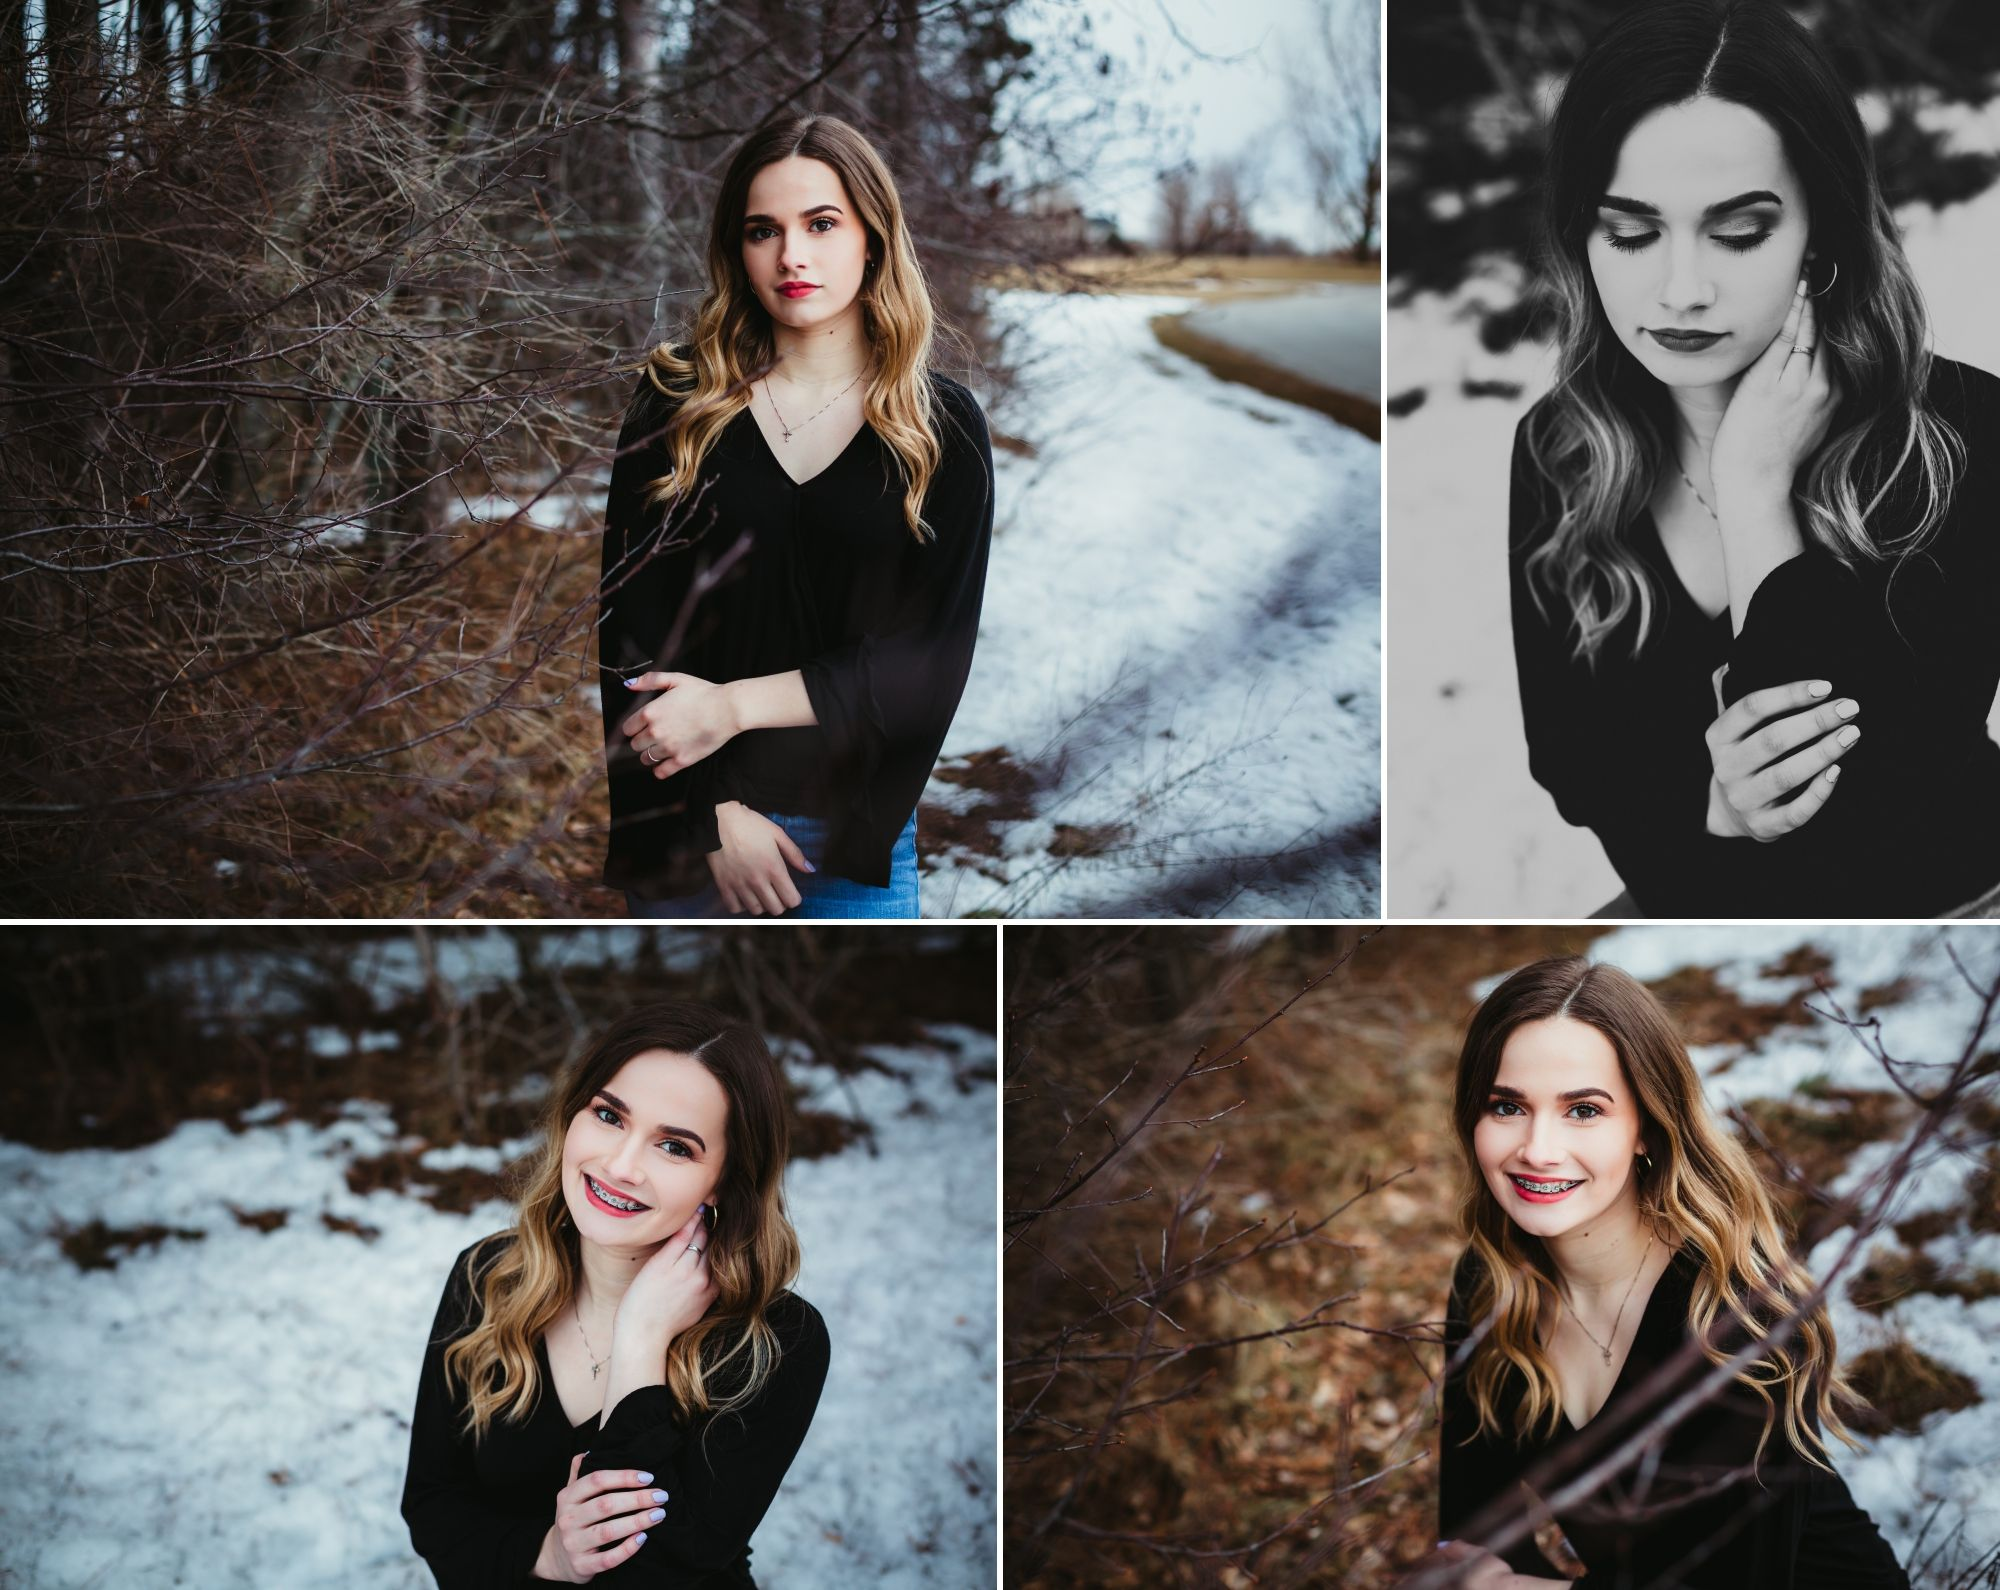 Photos of high school senior girl posing in front of branches and snow.